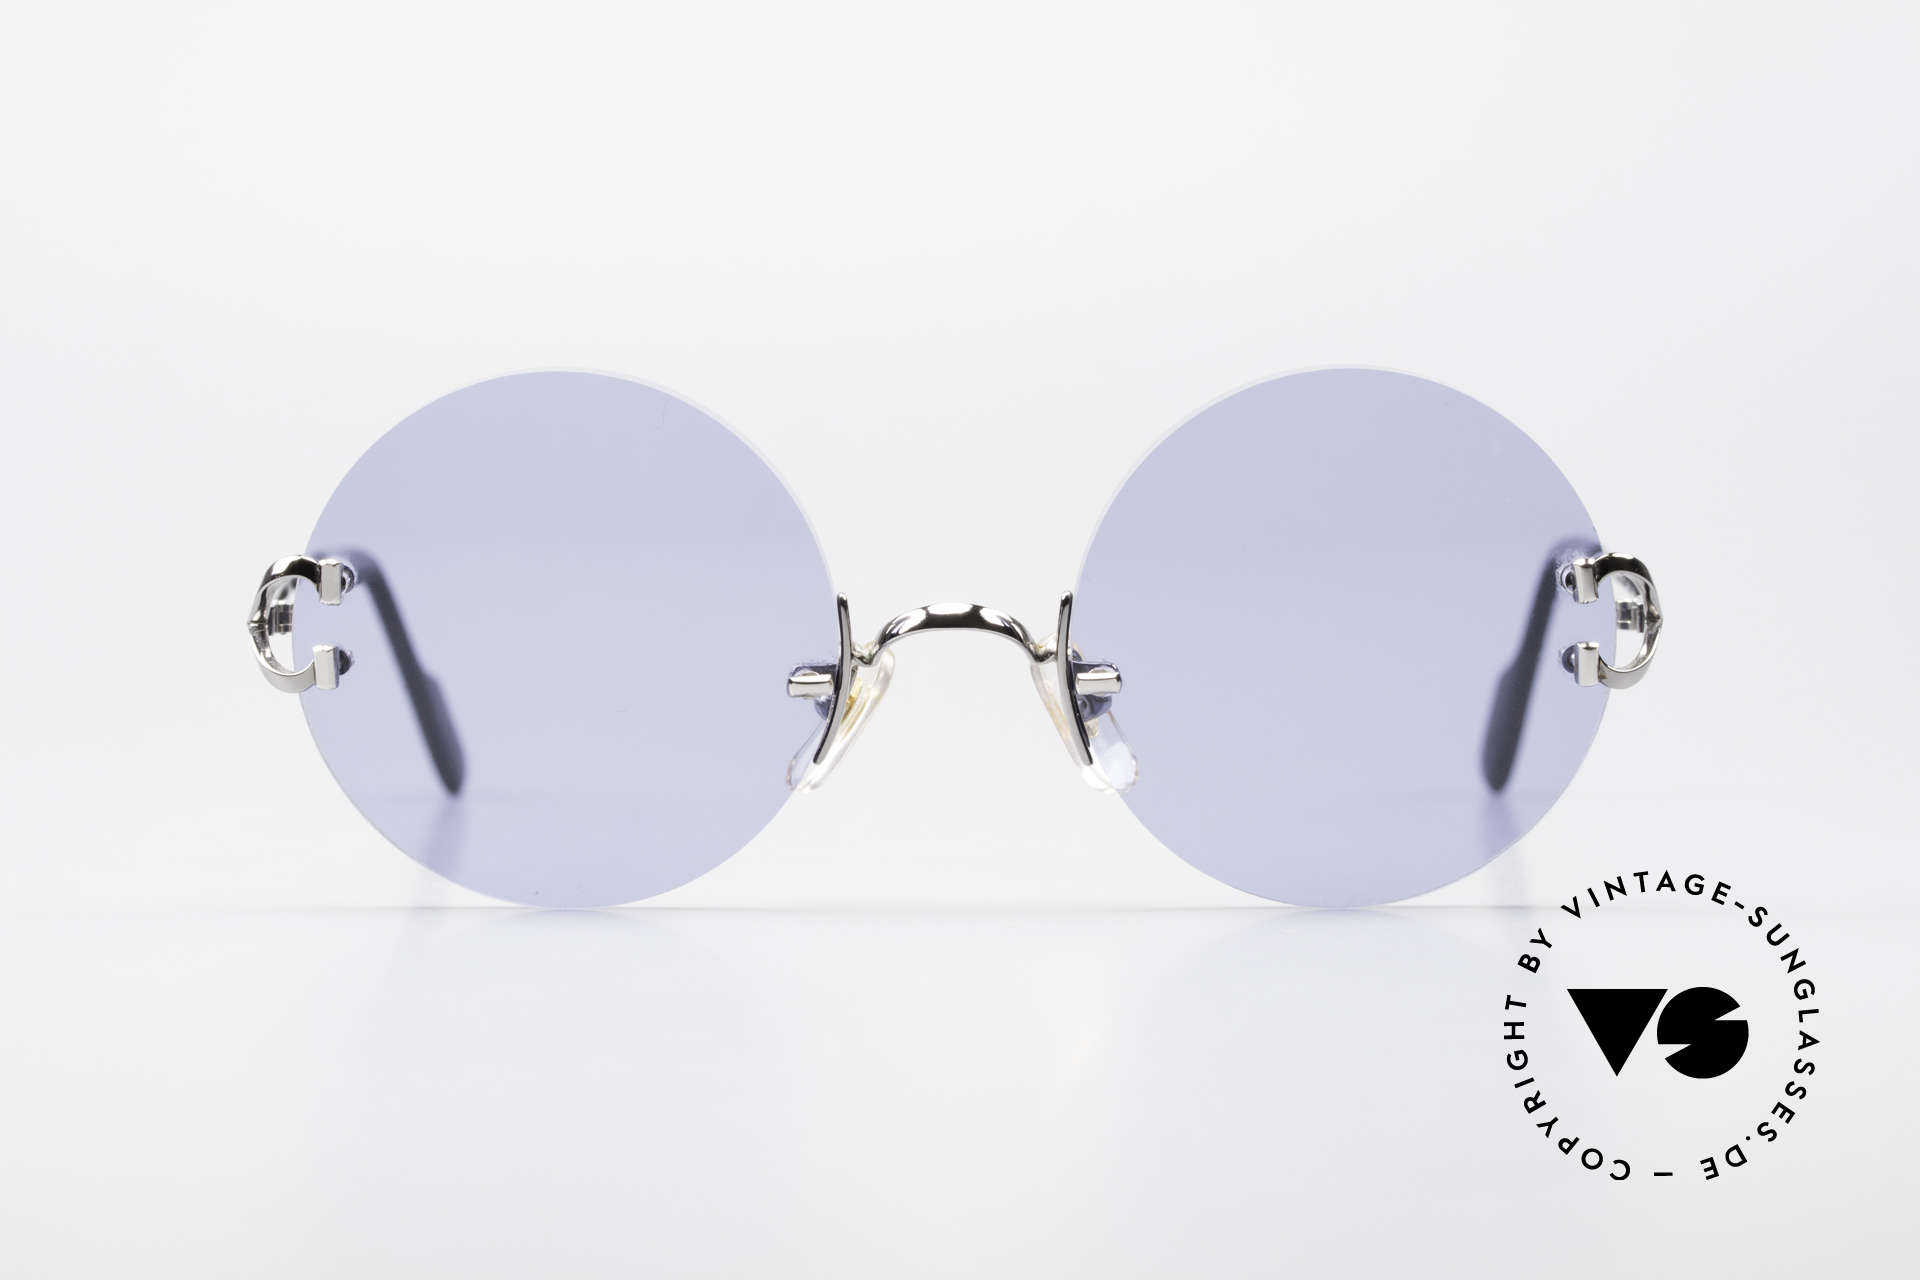 Cartier Madison Round Sunglasses Gunmetal, the frame finish shines like anthracite chrome-plated, Made for Men and Women